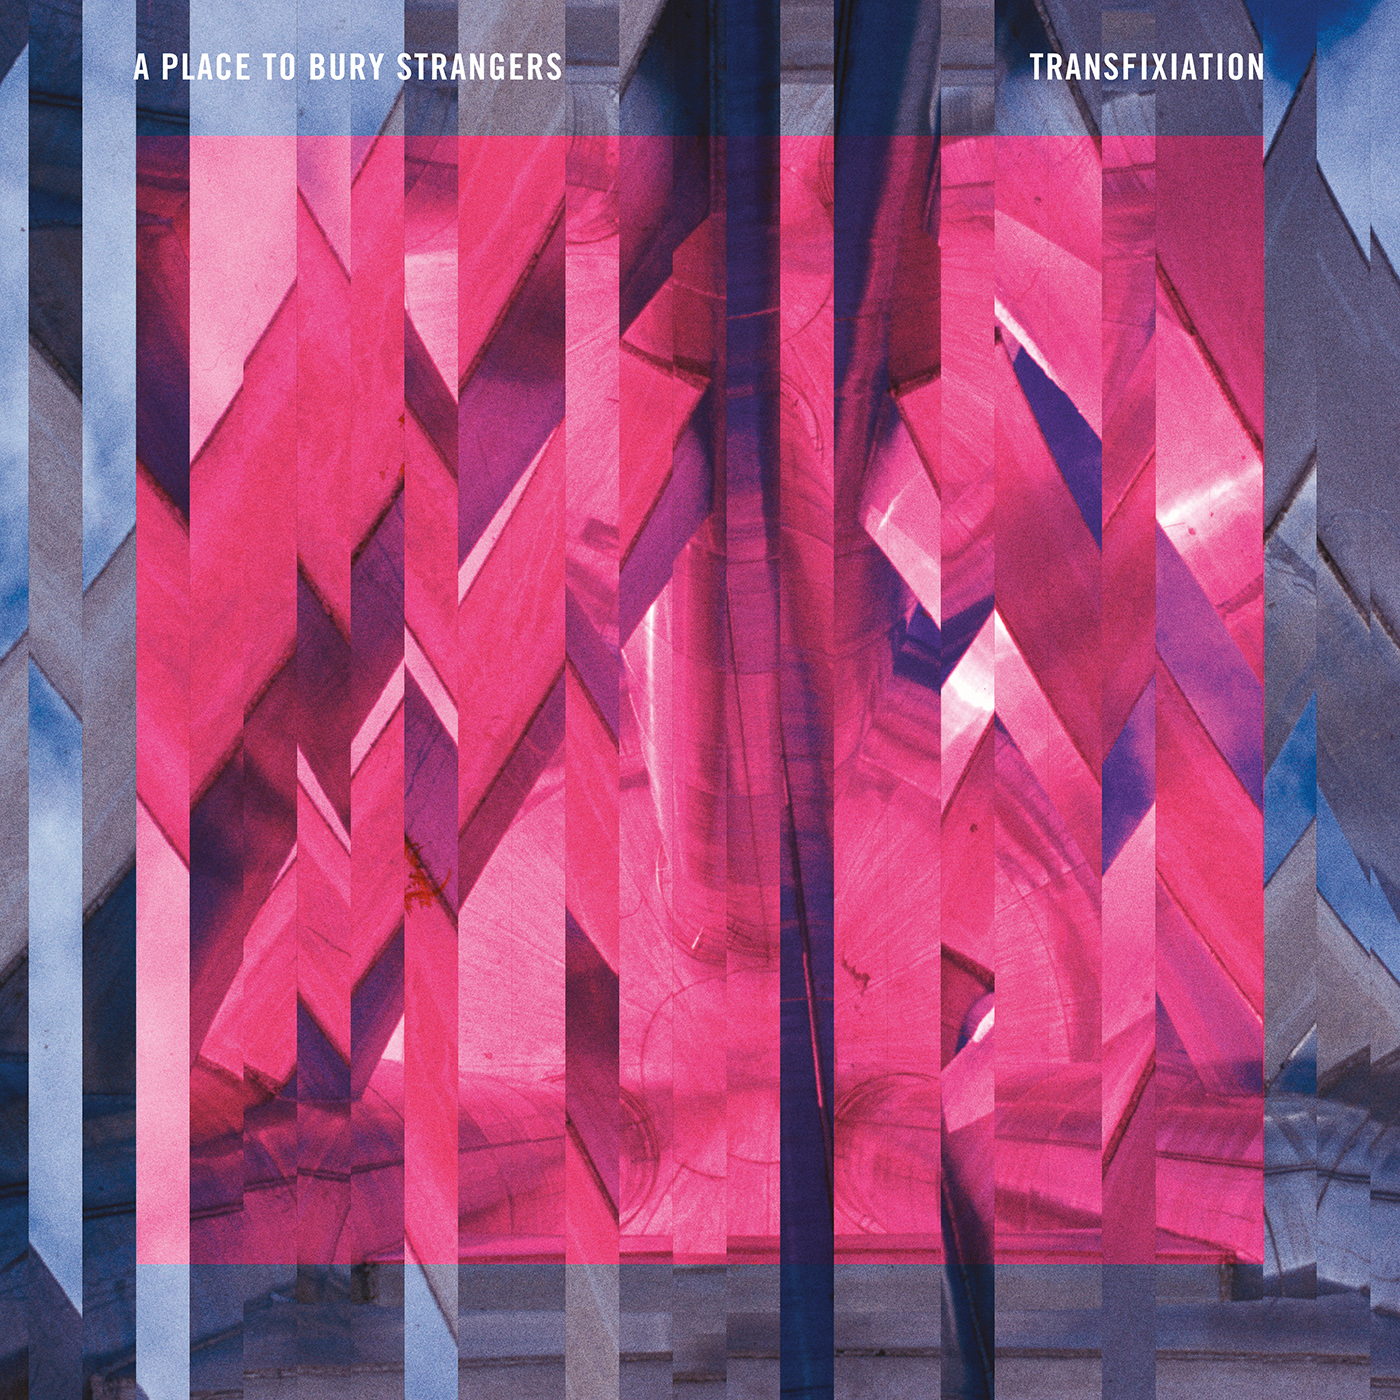 A Place To Bury Strangers - Transfixiation - The Revue